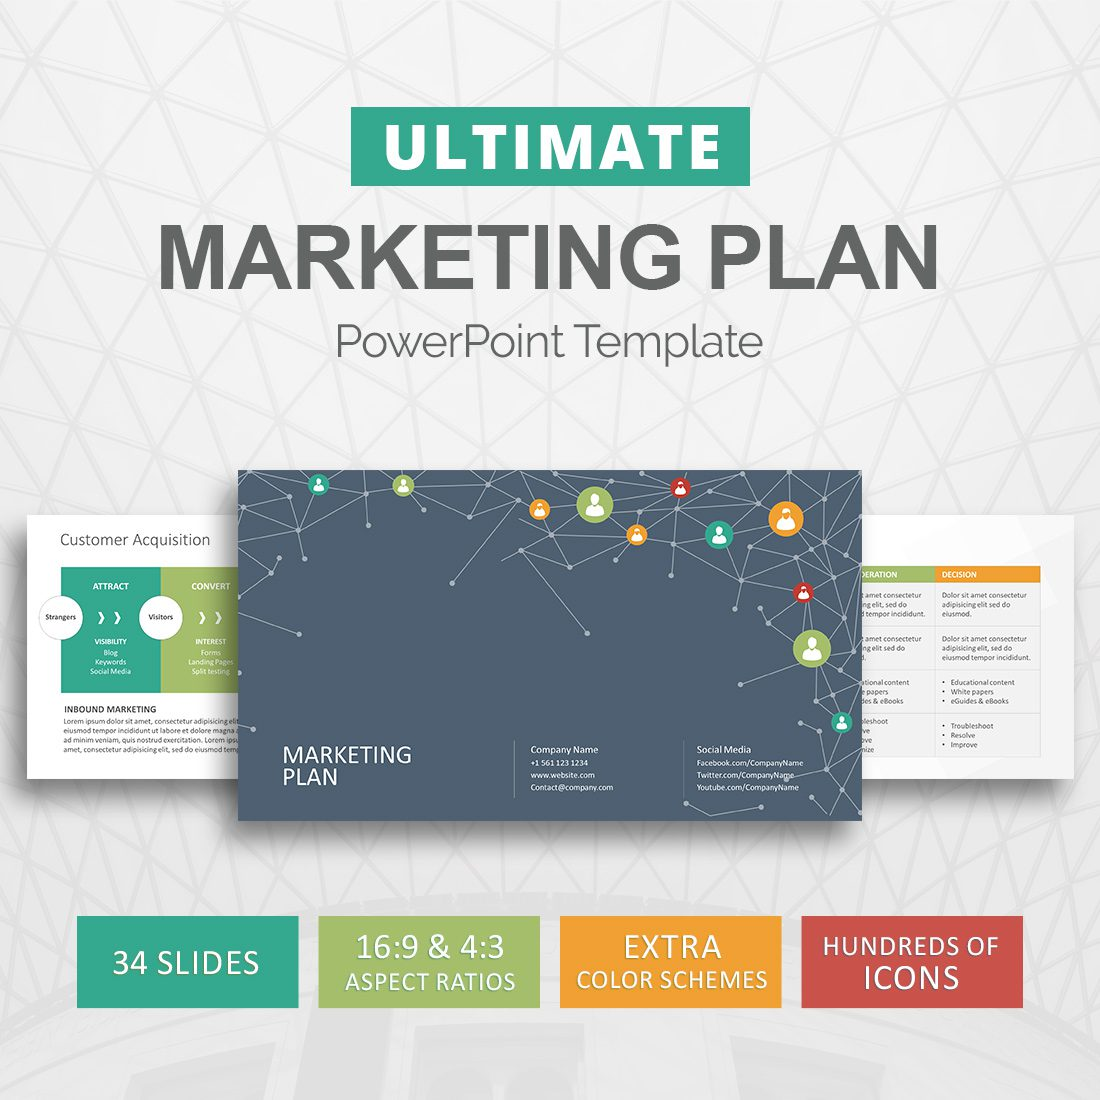 marketing plan powerpoint template - marketing strategy - slideson, Modern powerpoint